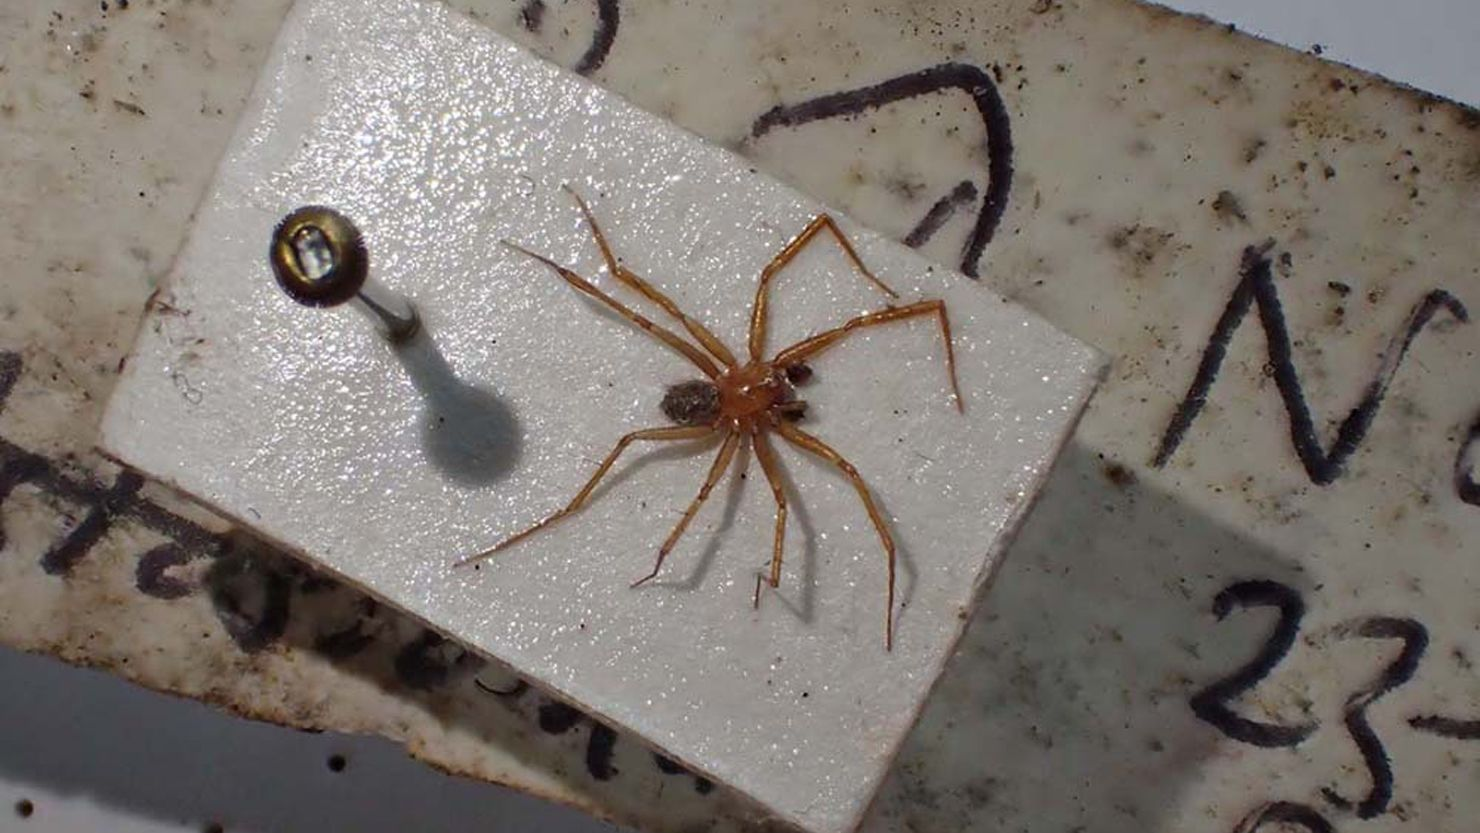 Photo of the rare Horrid Ground Weaver spider from The Box, Plymouth's collections